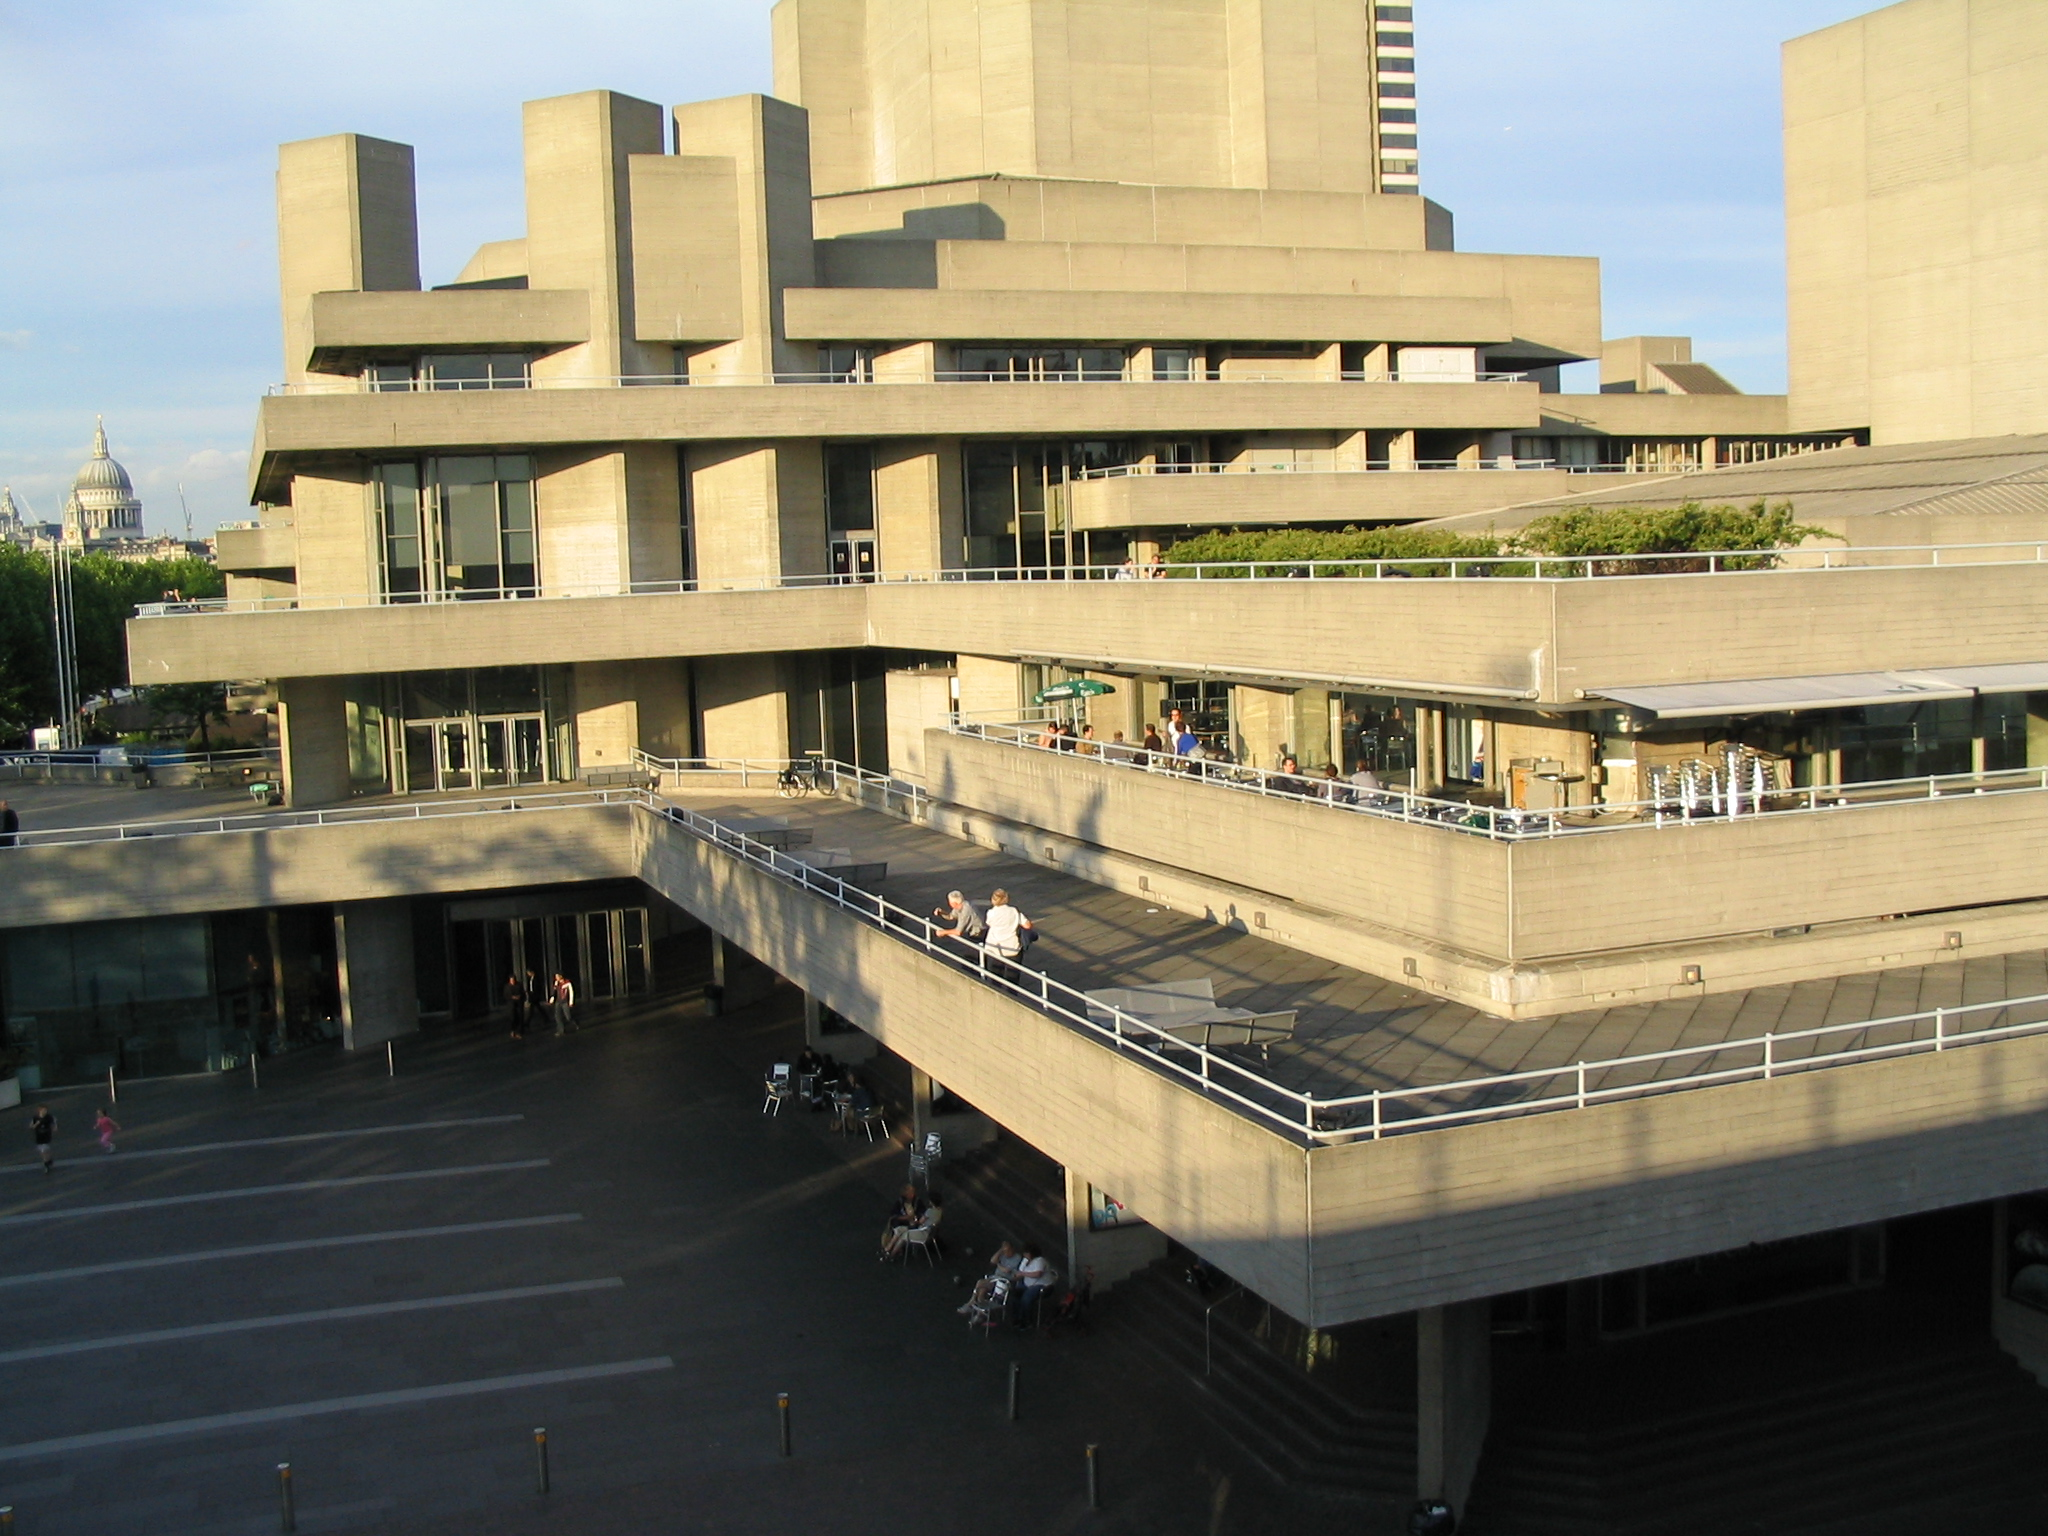 The South Bank Centre: National Theatre, Royal Festival Hall, and Queen Elizabeth Hall